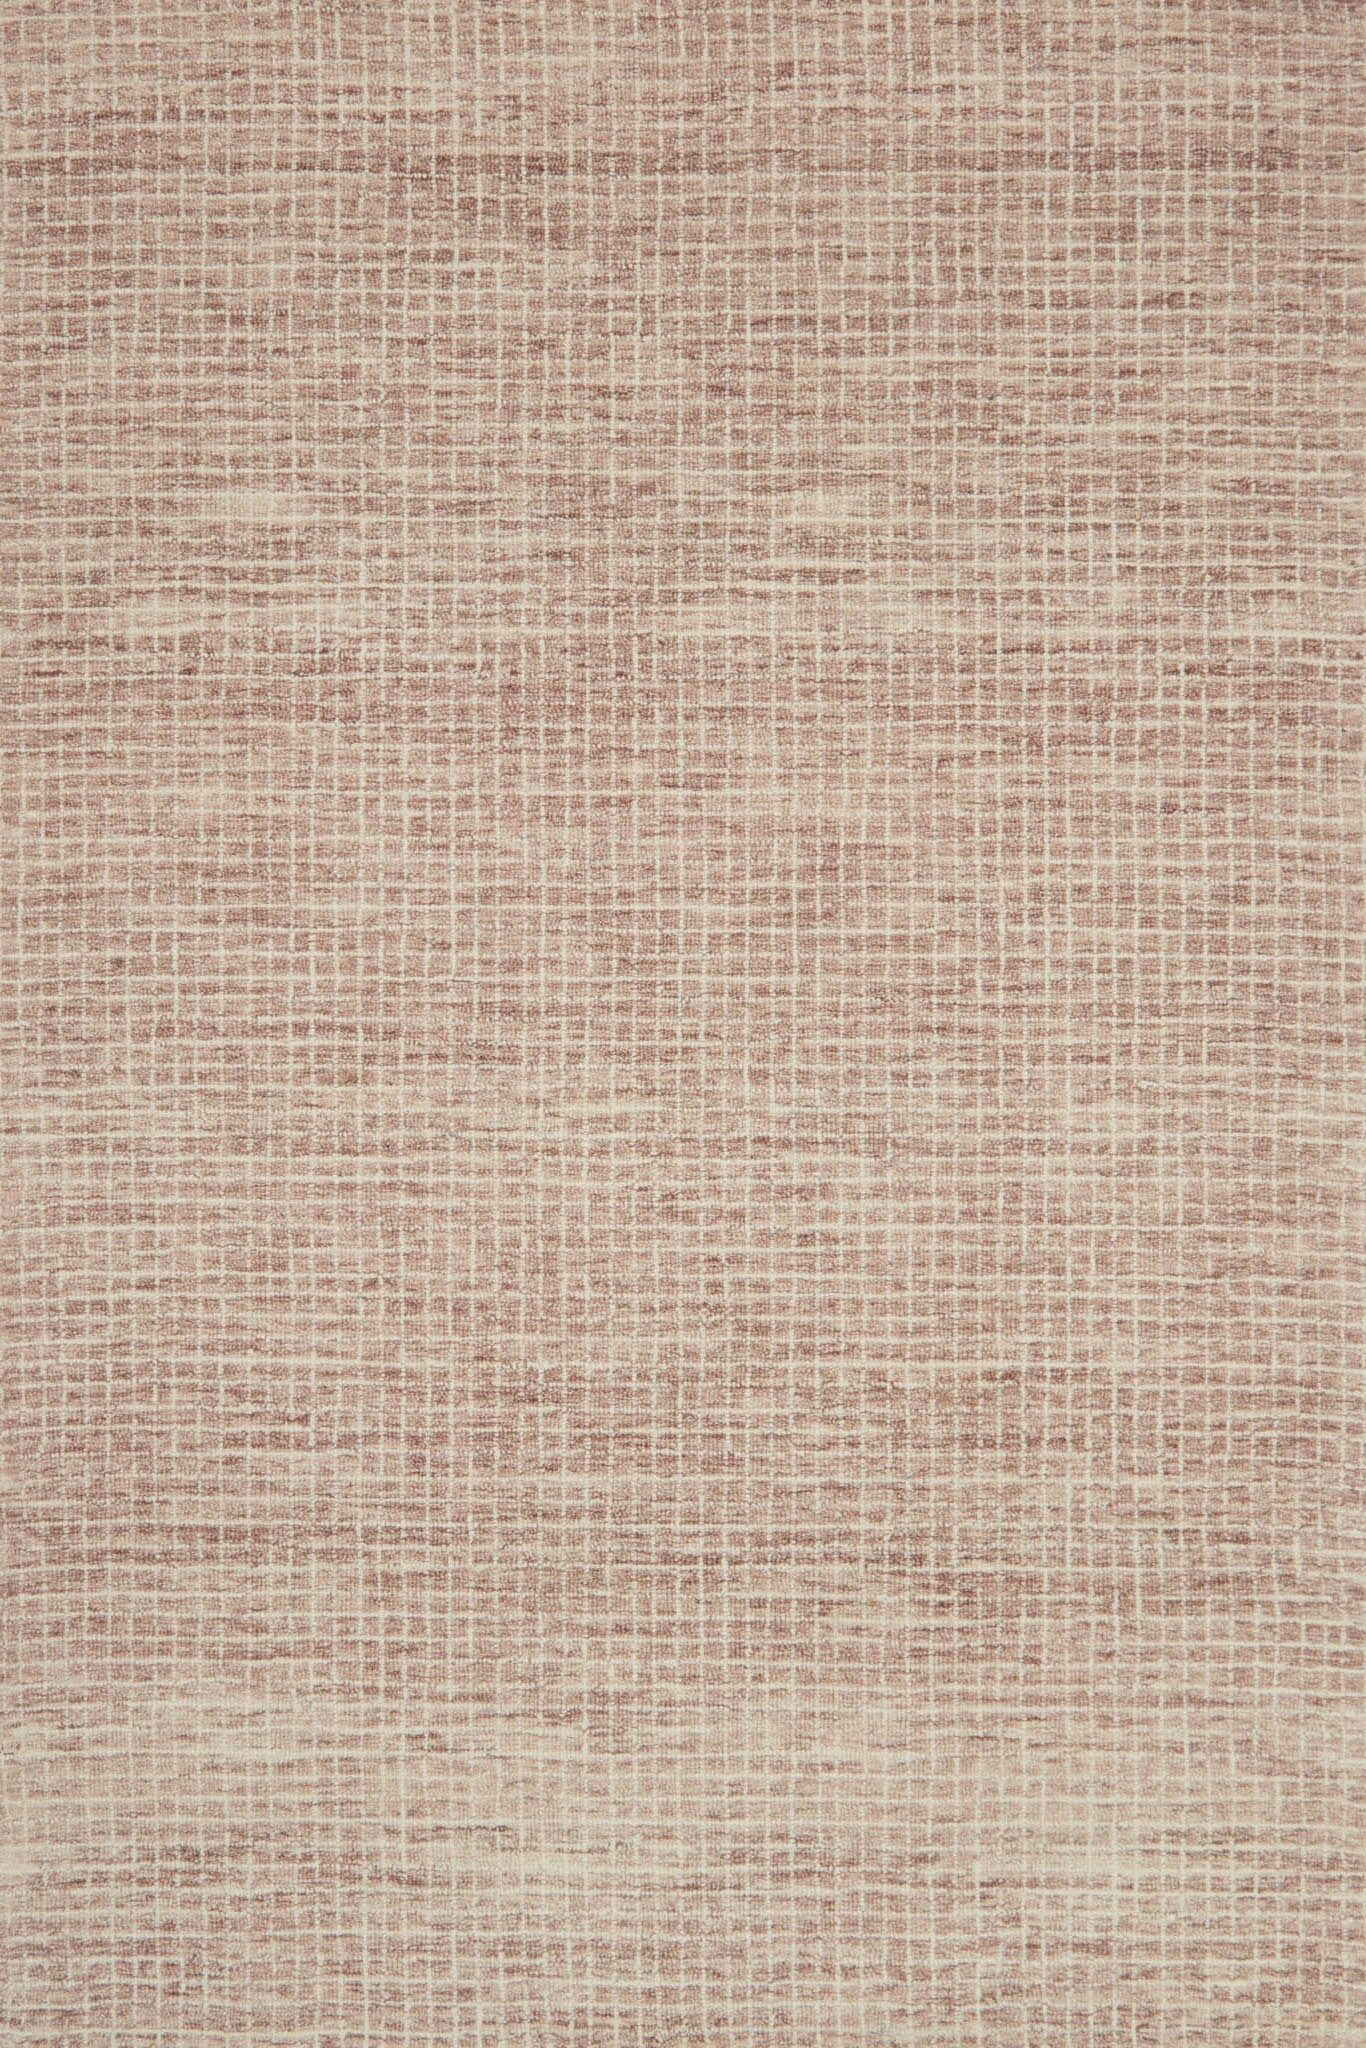 Bourque Hand-Hooked Wool Blush Area Rug Rug Size: Rectangle 7'9